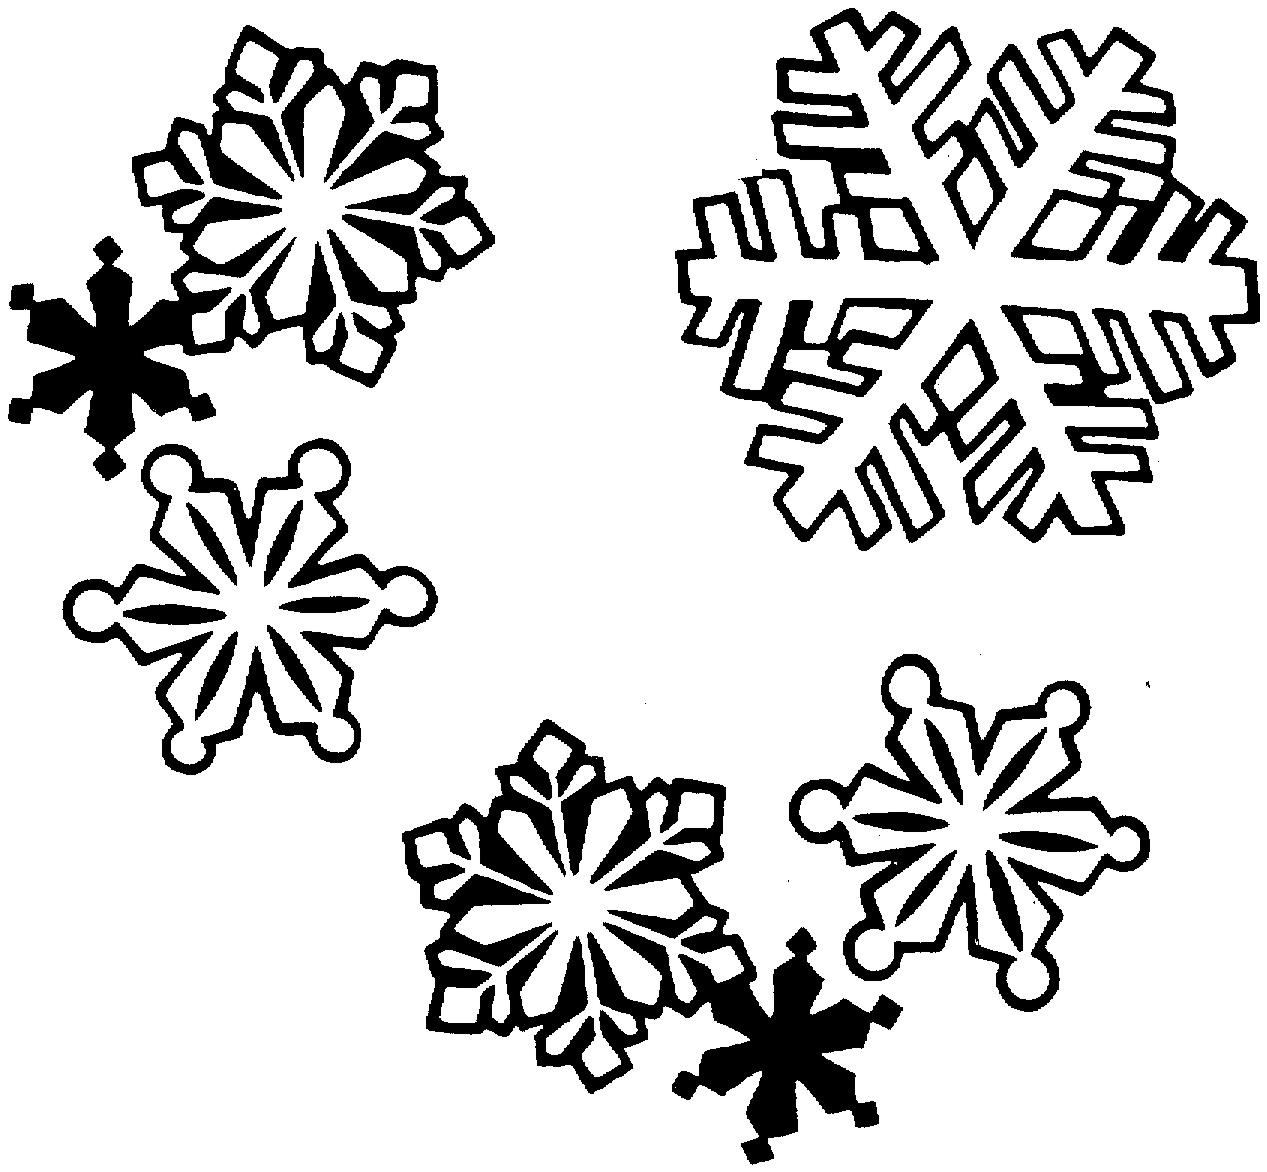 christmas tree ornaments clipart black and white - Clipground